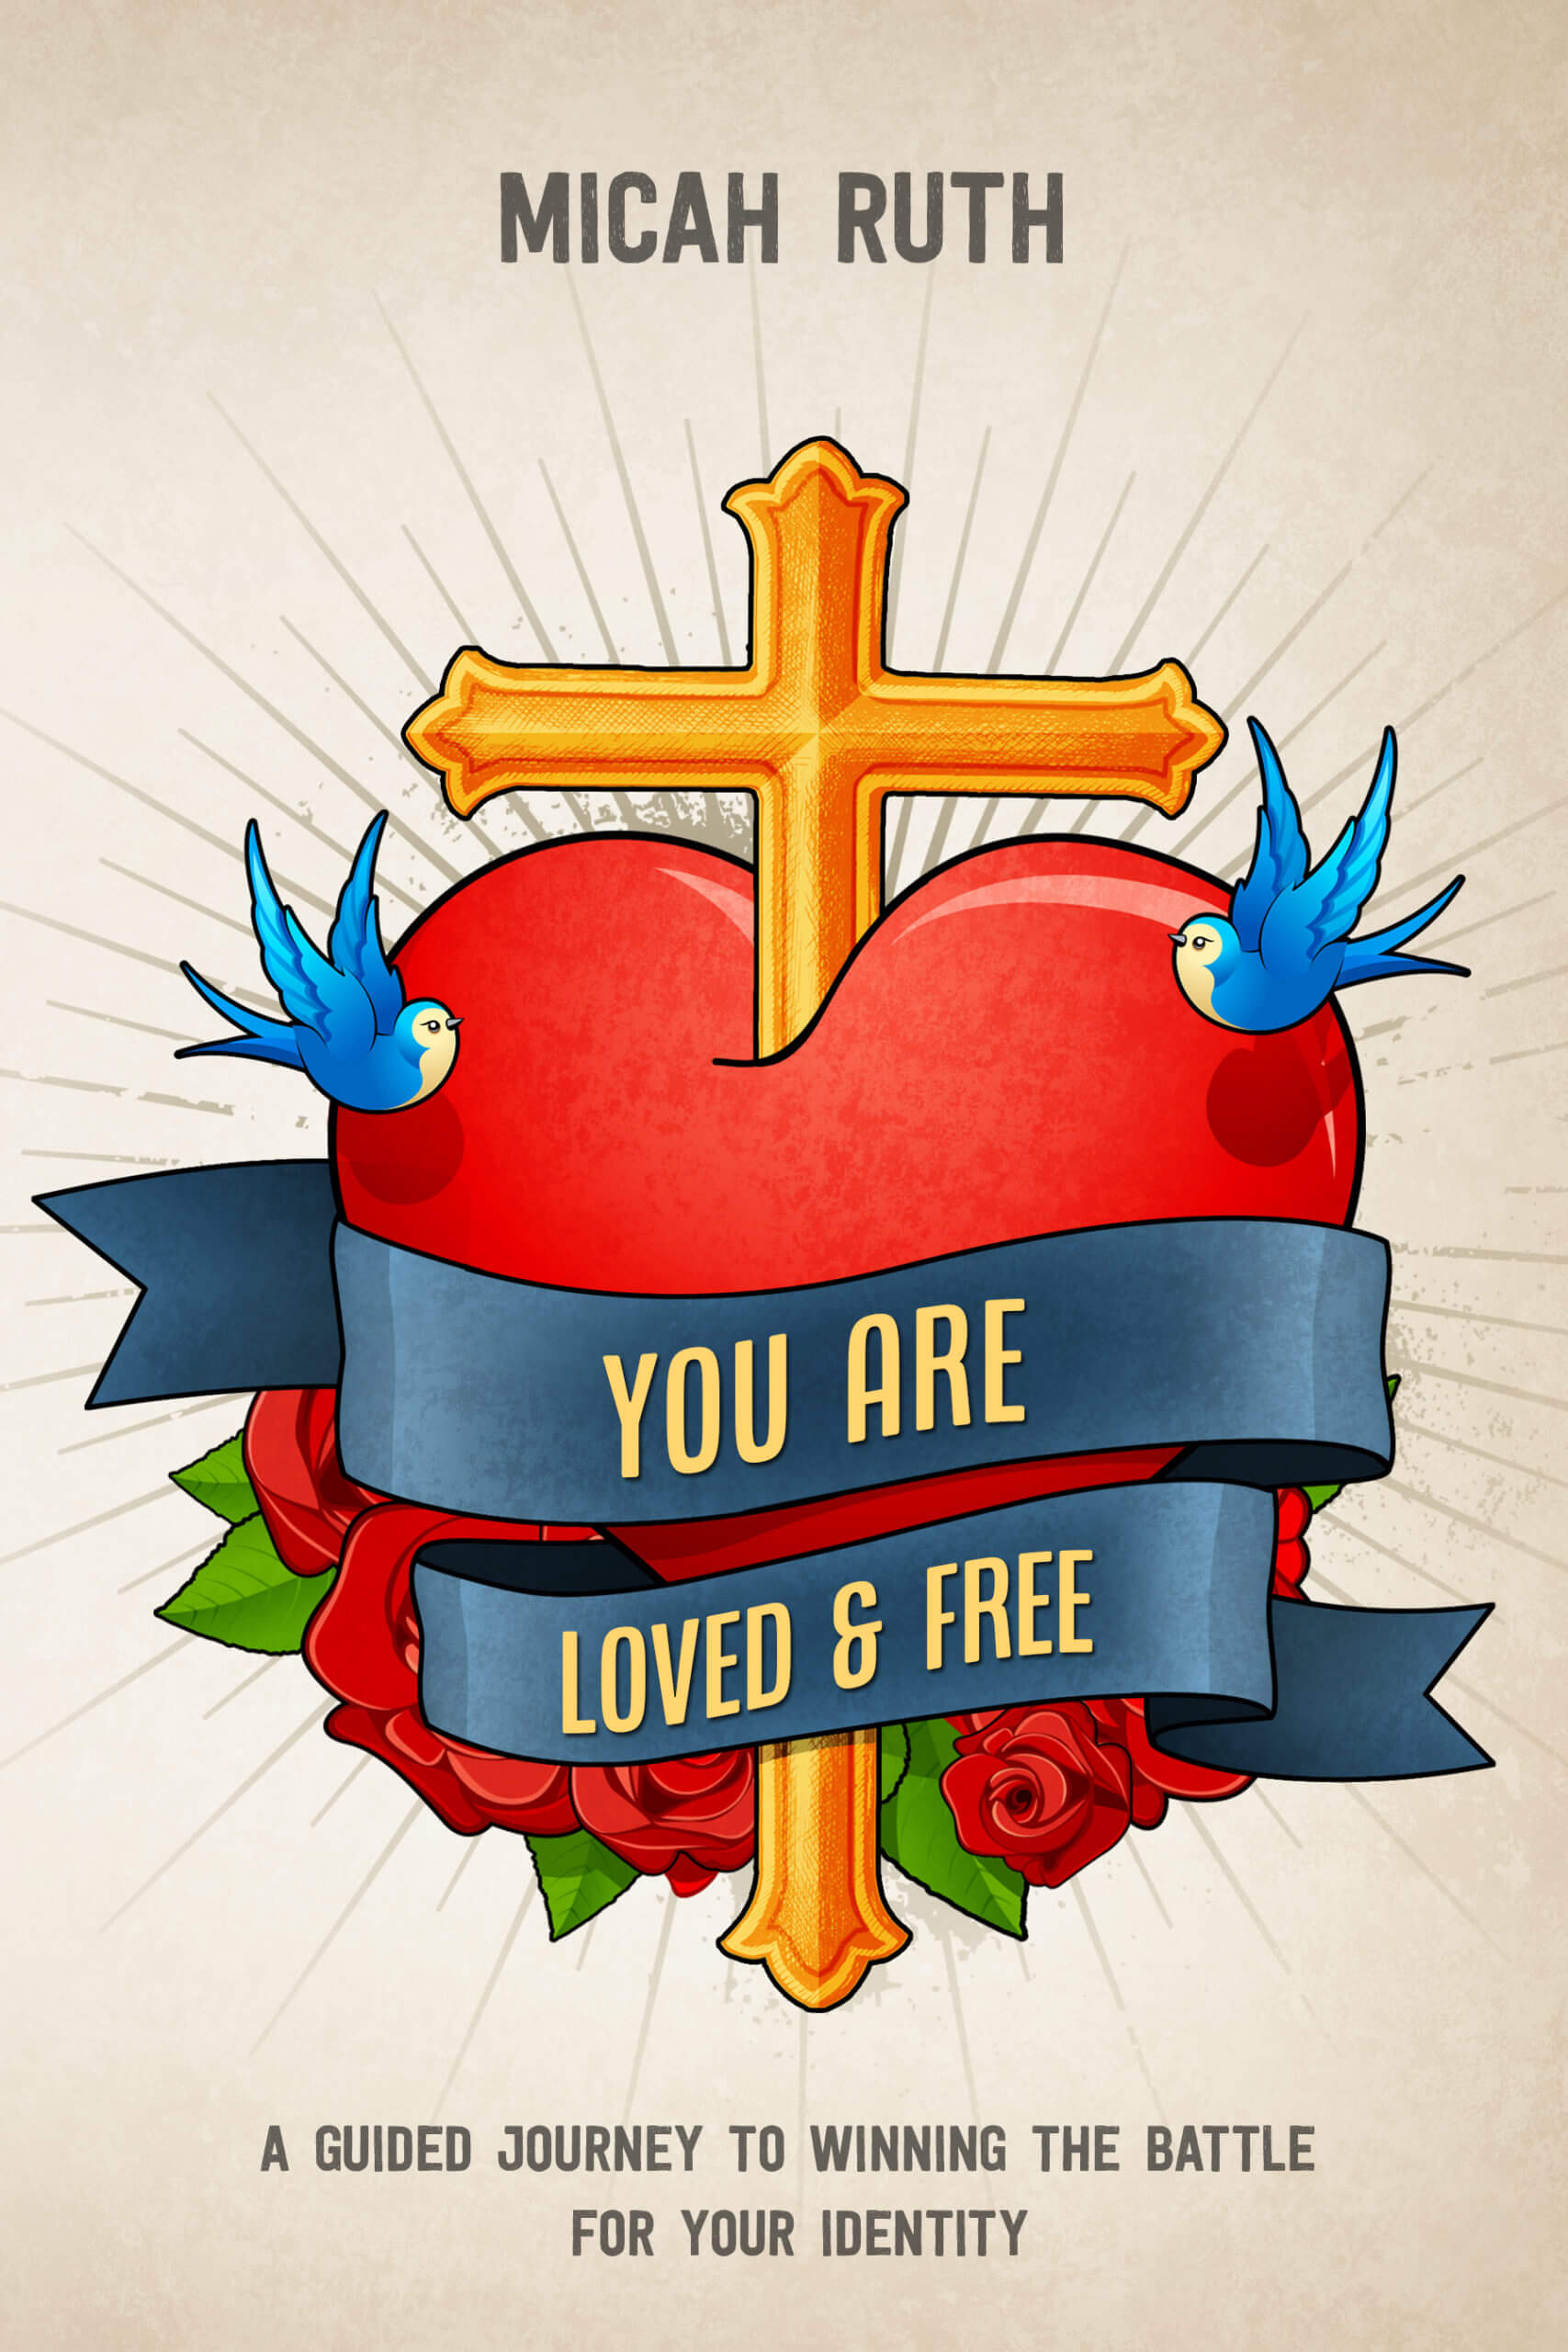 You Are Loved & Free